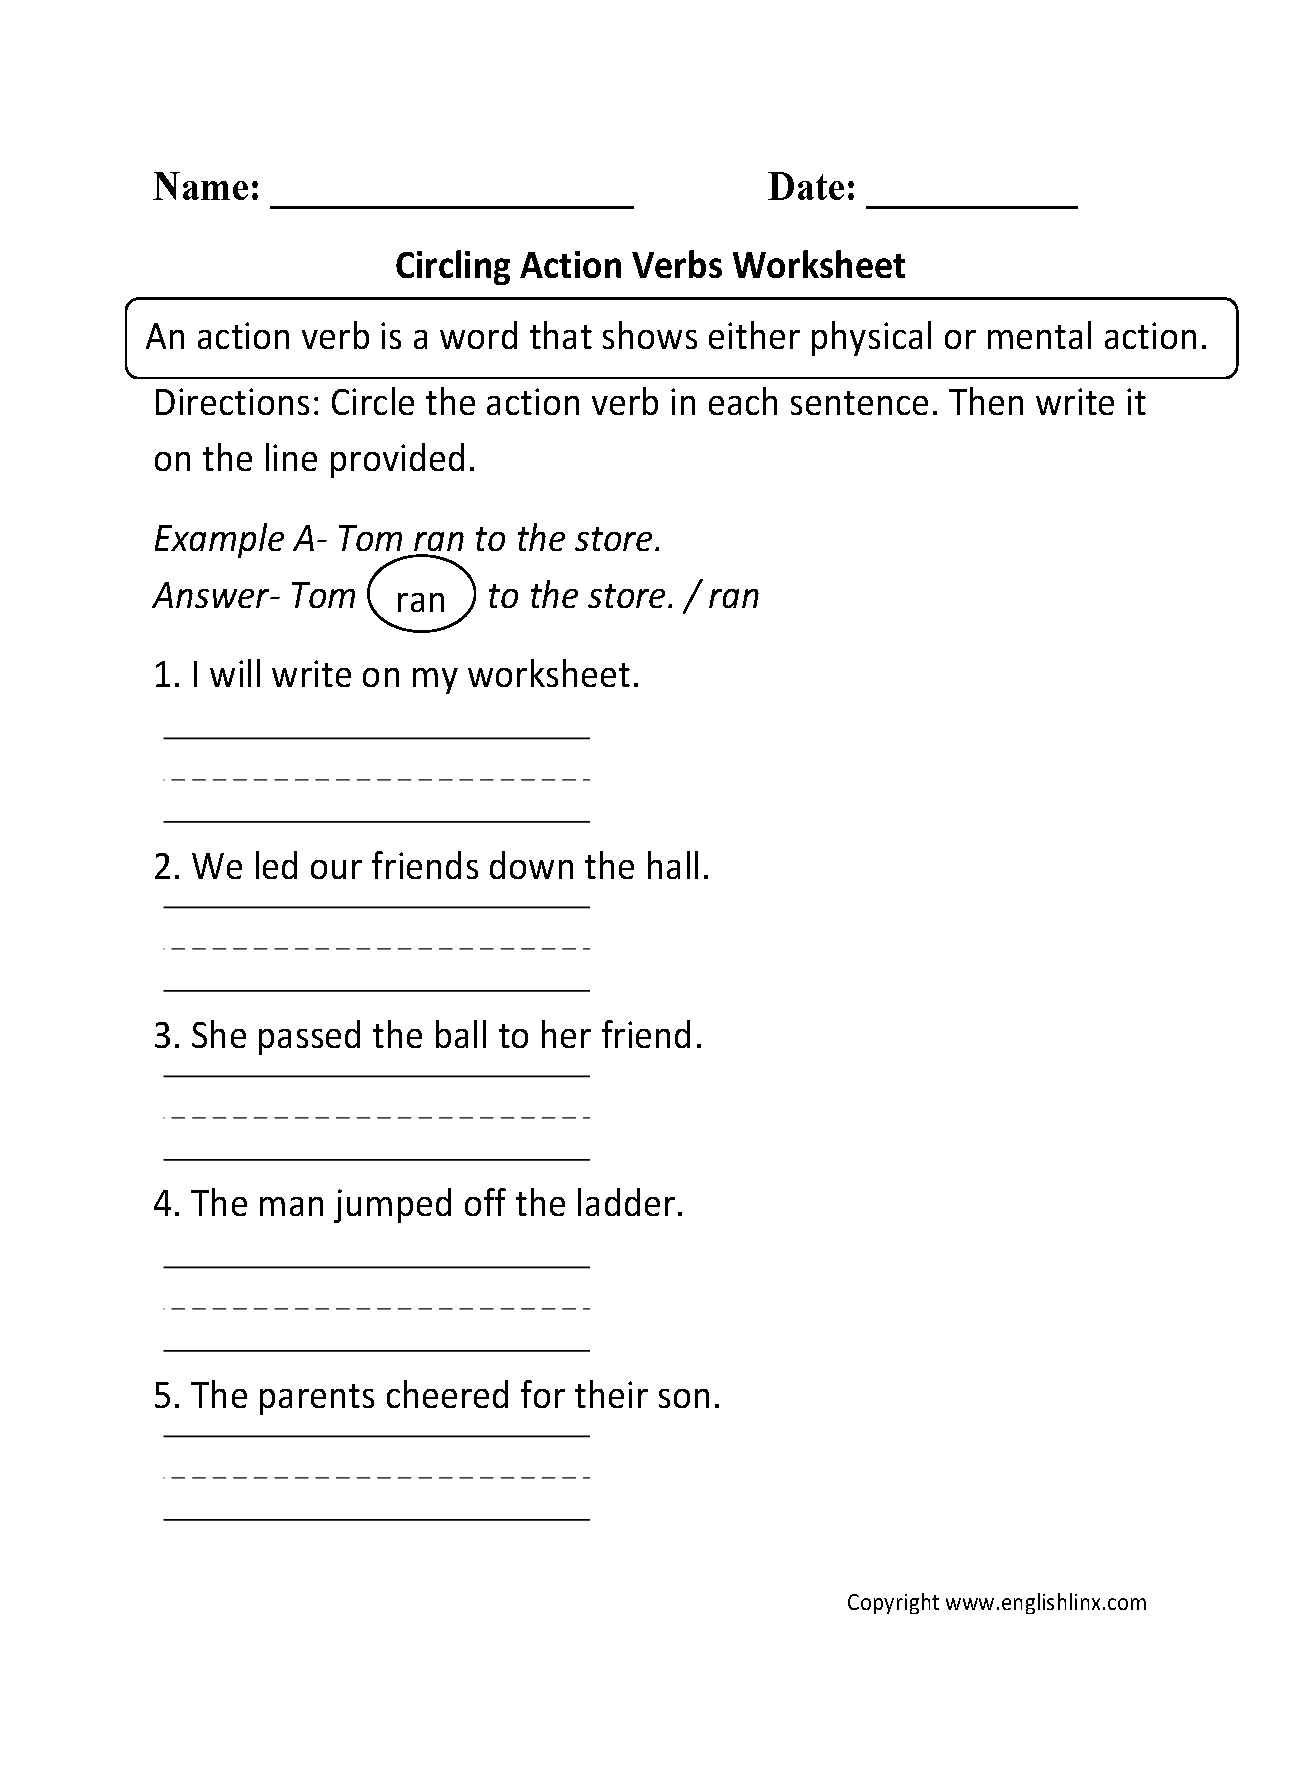 Resume Action Verbs Worksheet